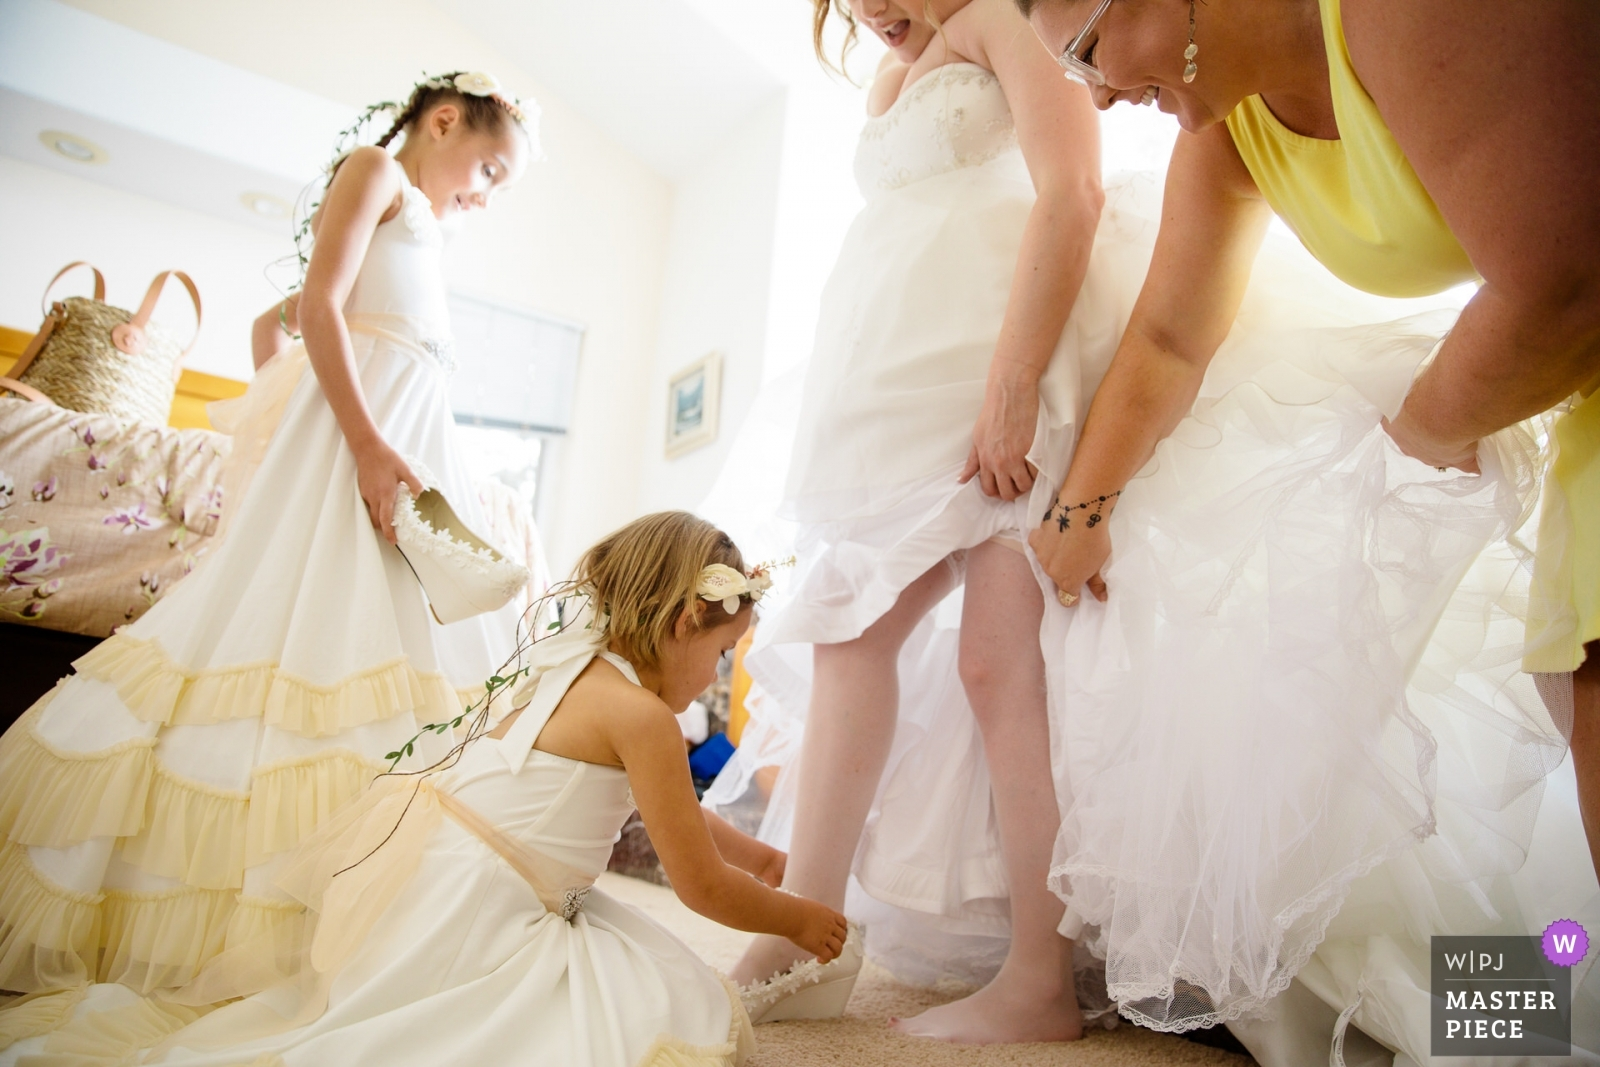 The bride gets help with her shoes from her flower girls and maid of honor. - Lake Tahoe, California - Northern Wedding Photography -    South Lake Tahoe, Private Home